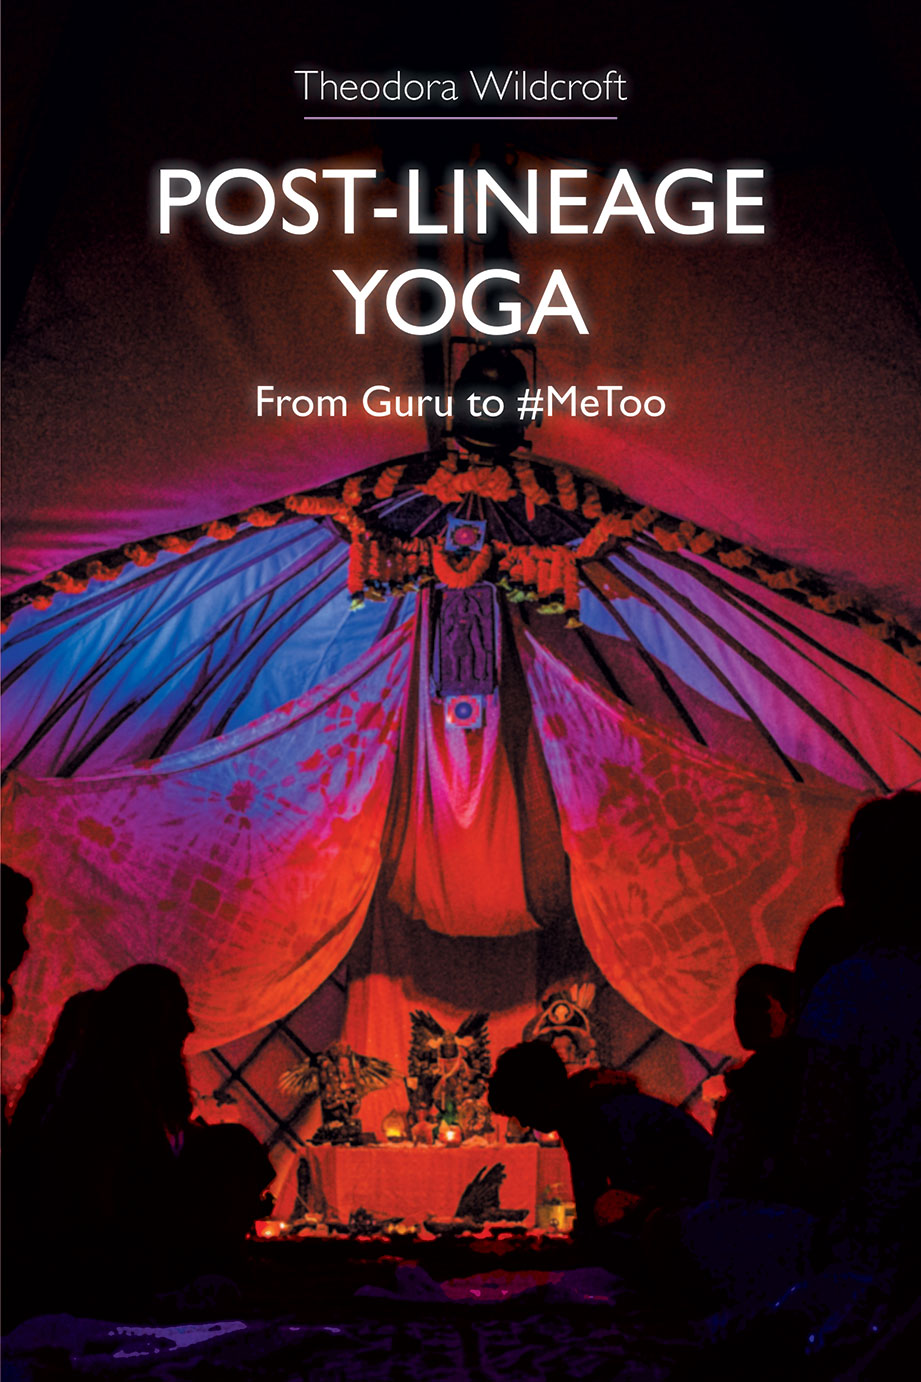 Post-lineage Yoga - From Guru to #MeToo - Theodora Wildcroft